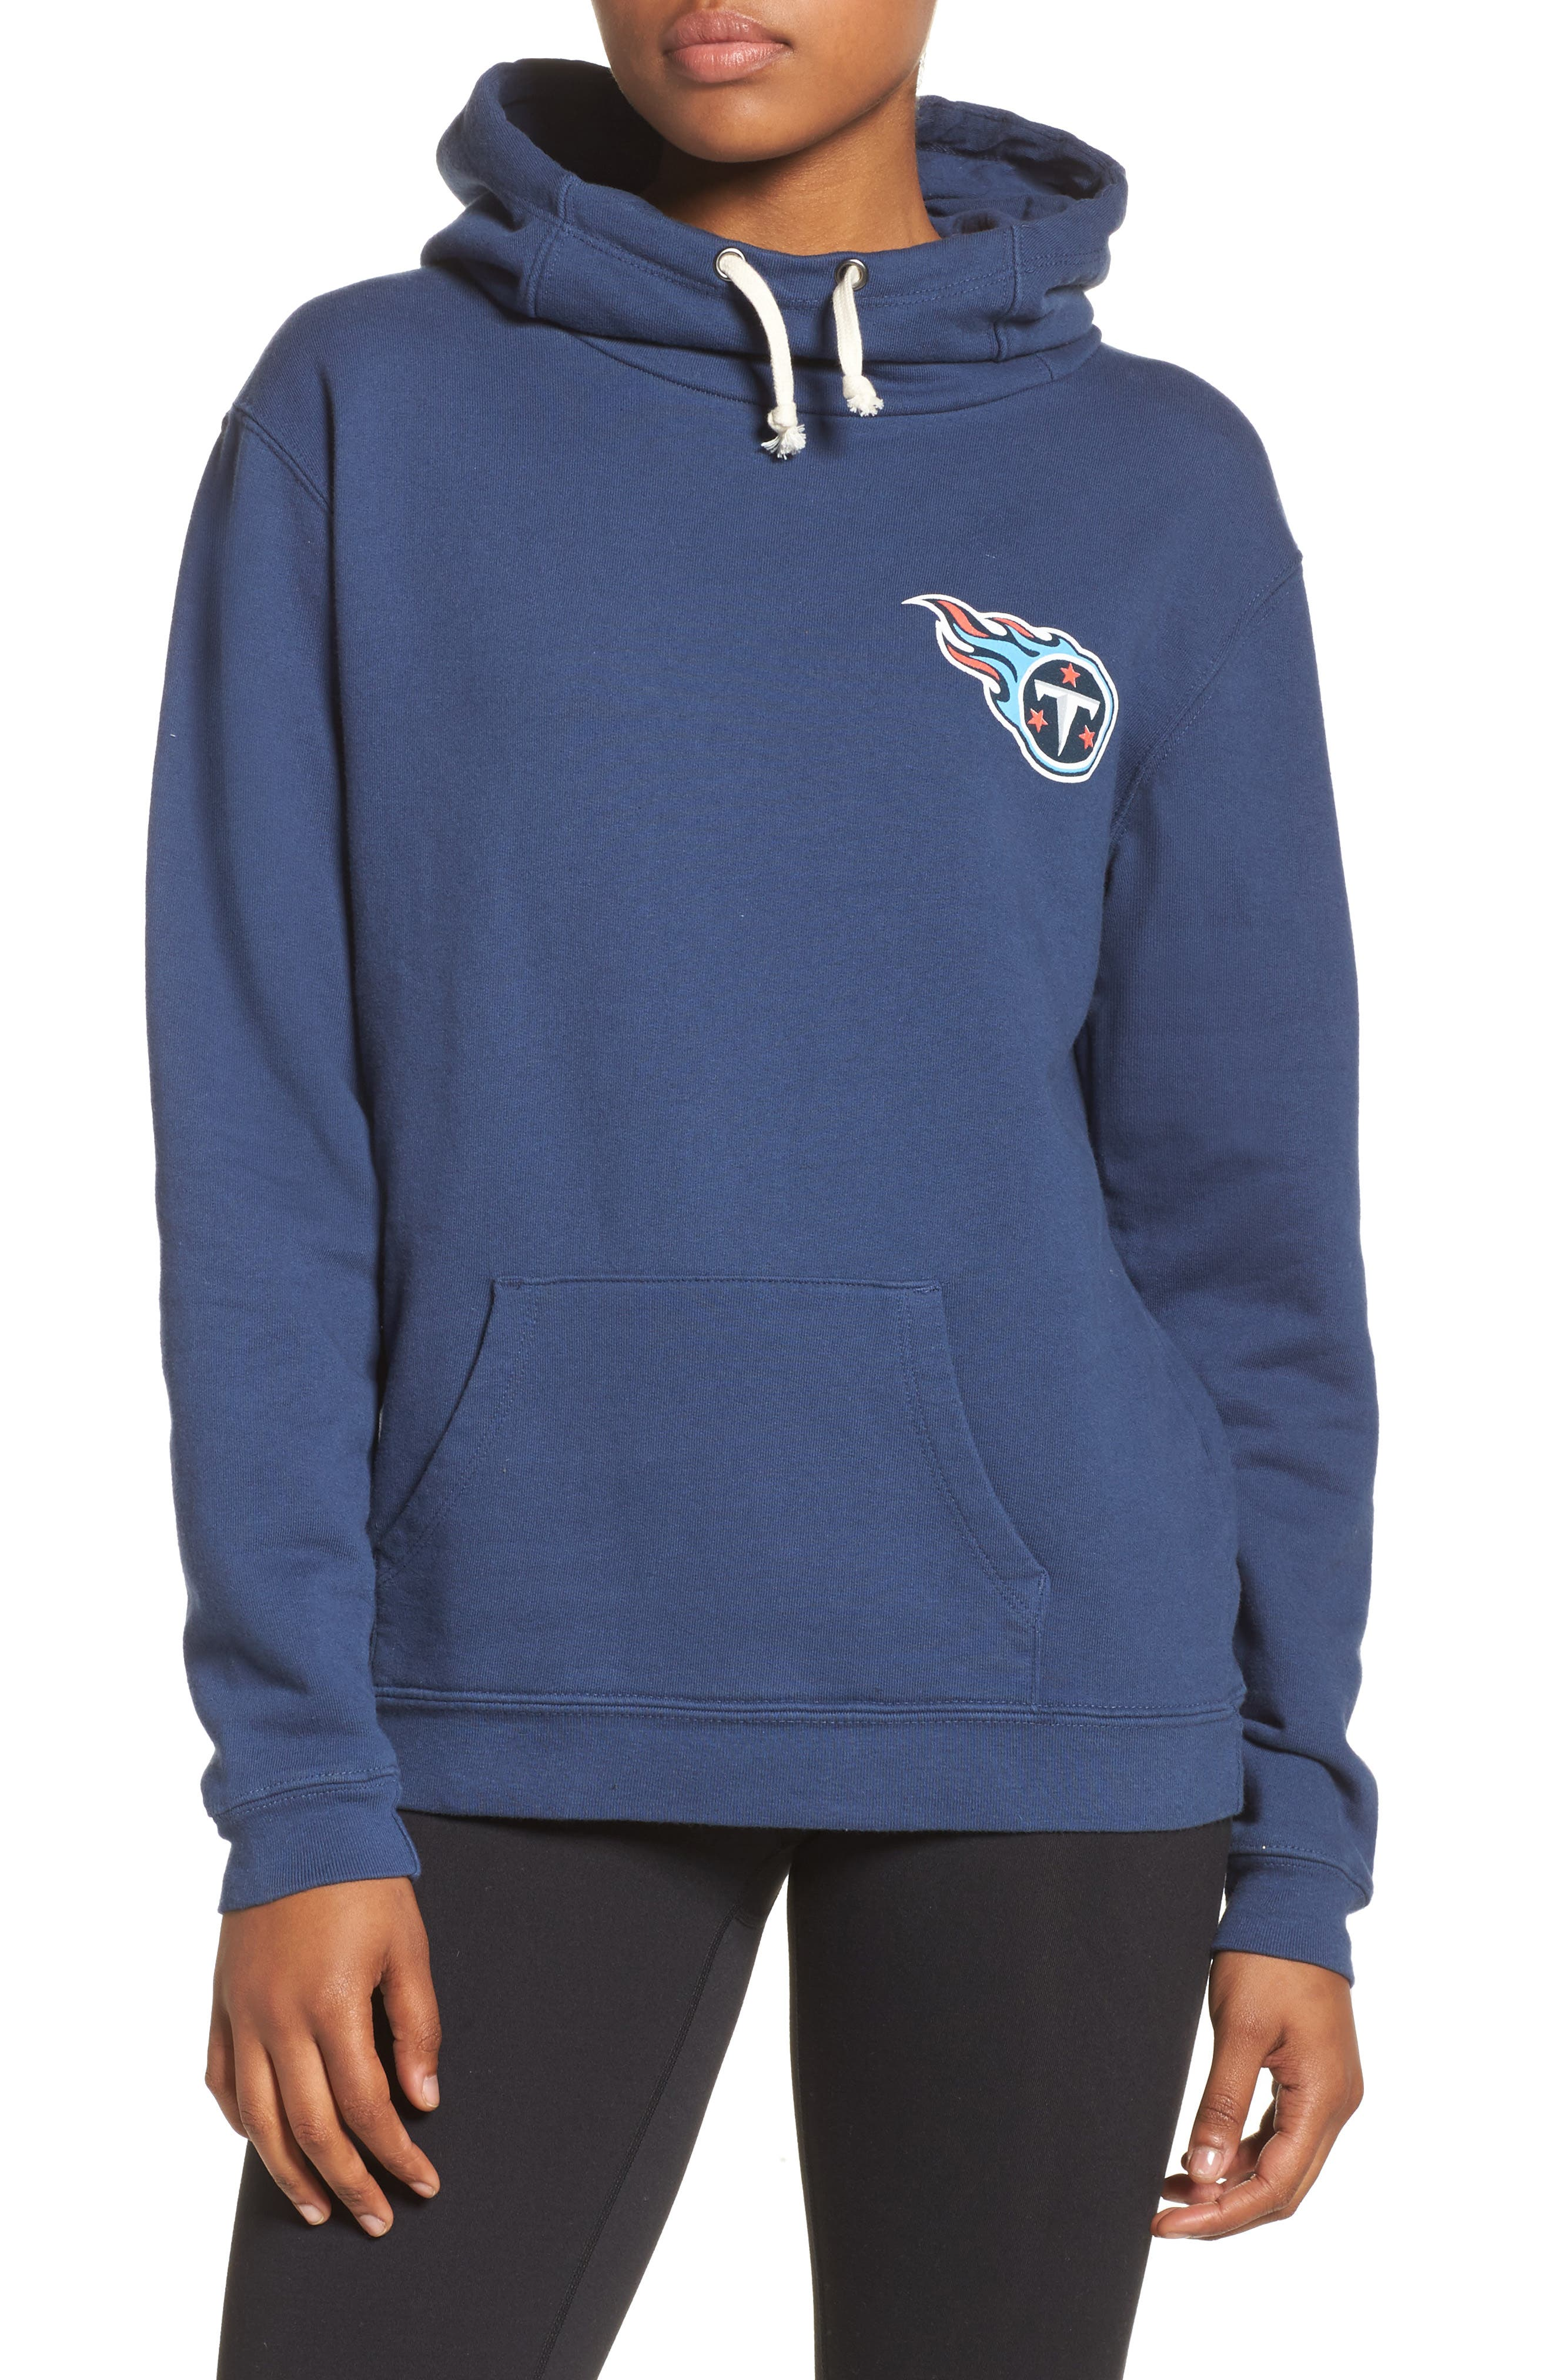 NFL Tennessee Titans Sunday Hoodie,                         Main,                         color, True Navy